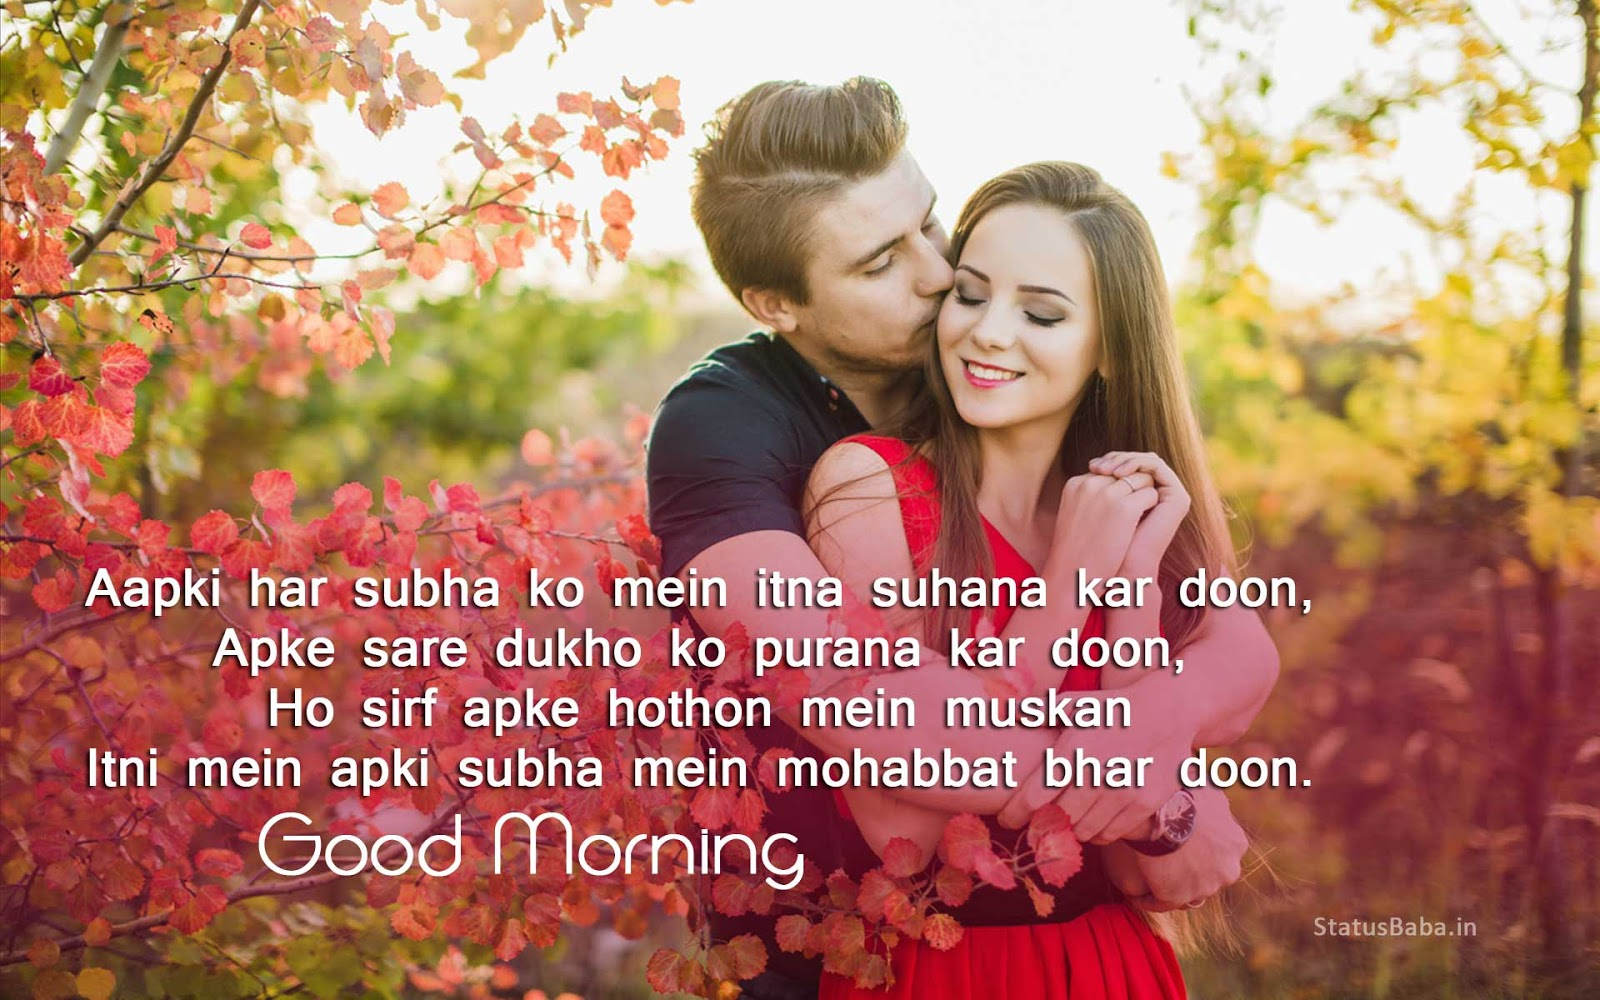 Sweet Good Morning Shayari For Girlfriend In Hindi Statusbaba